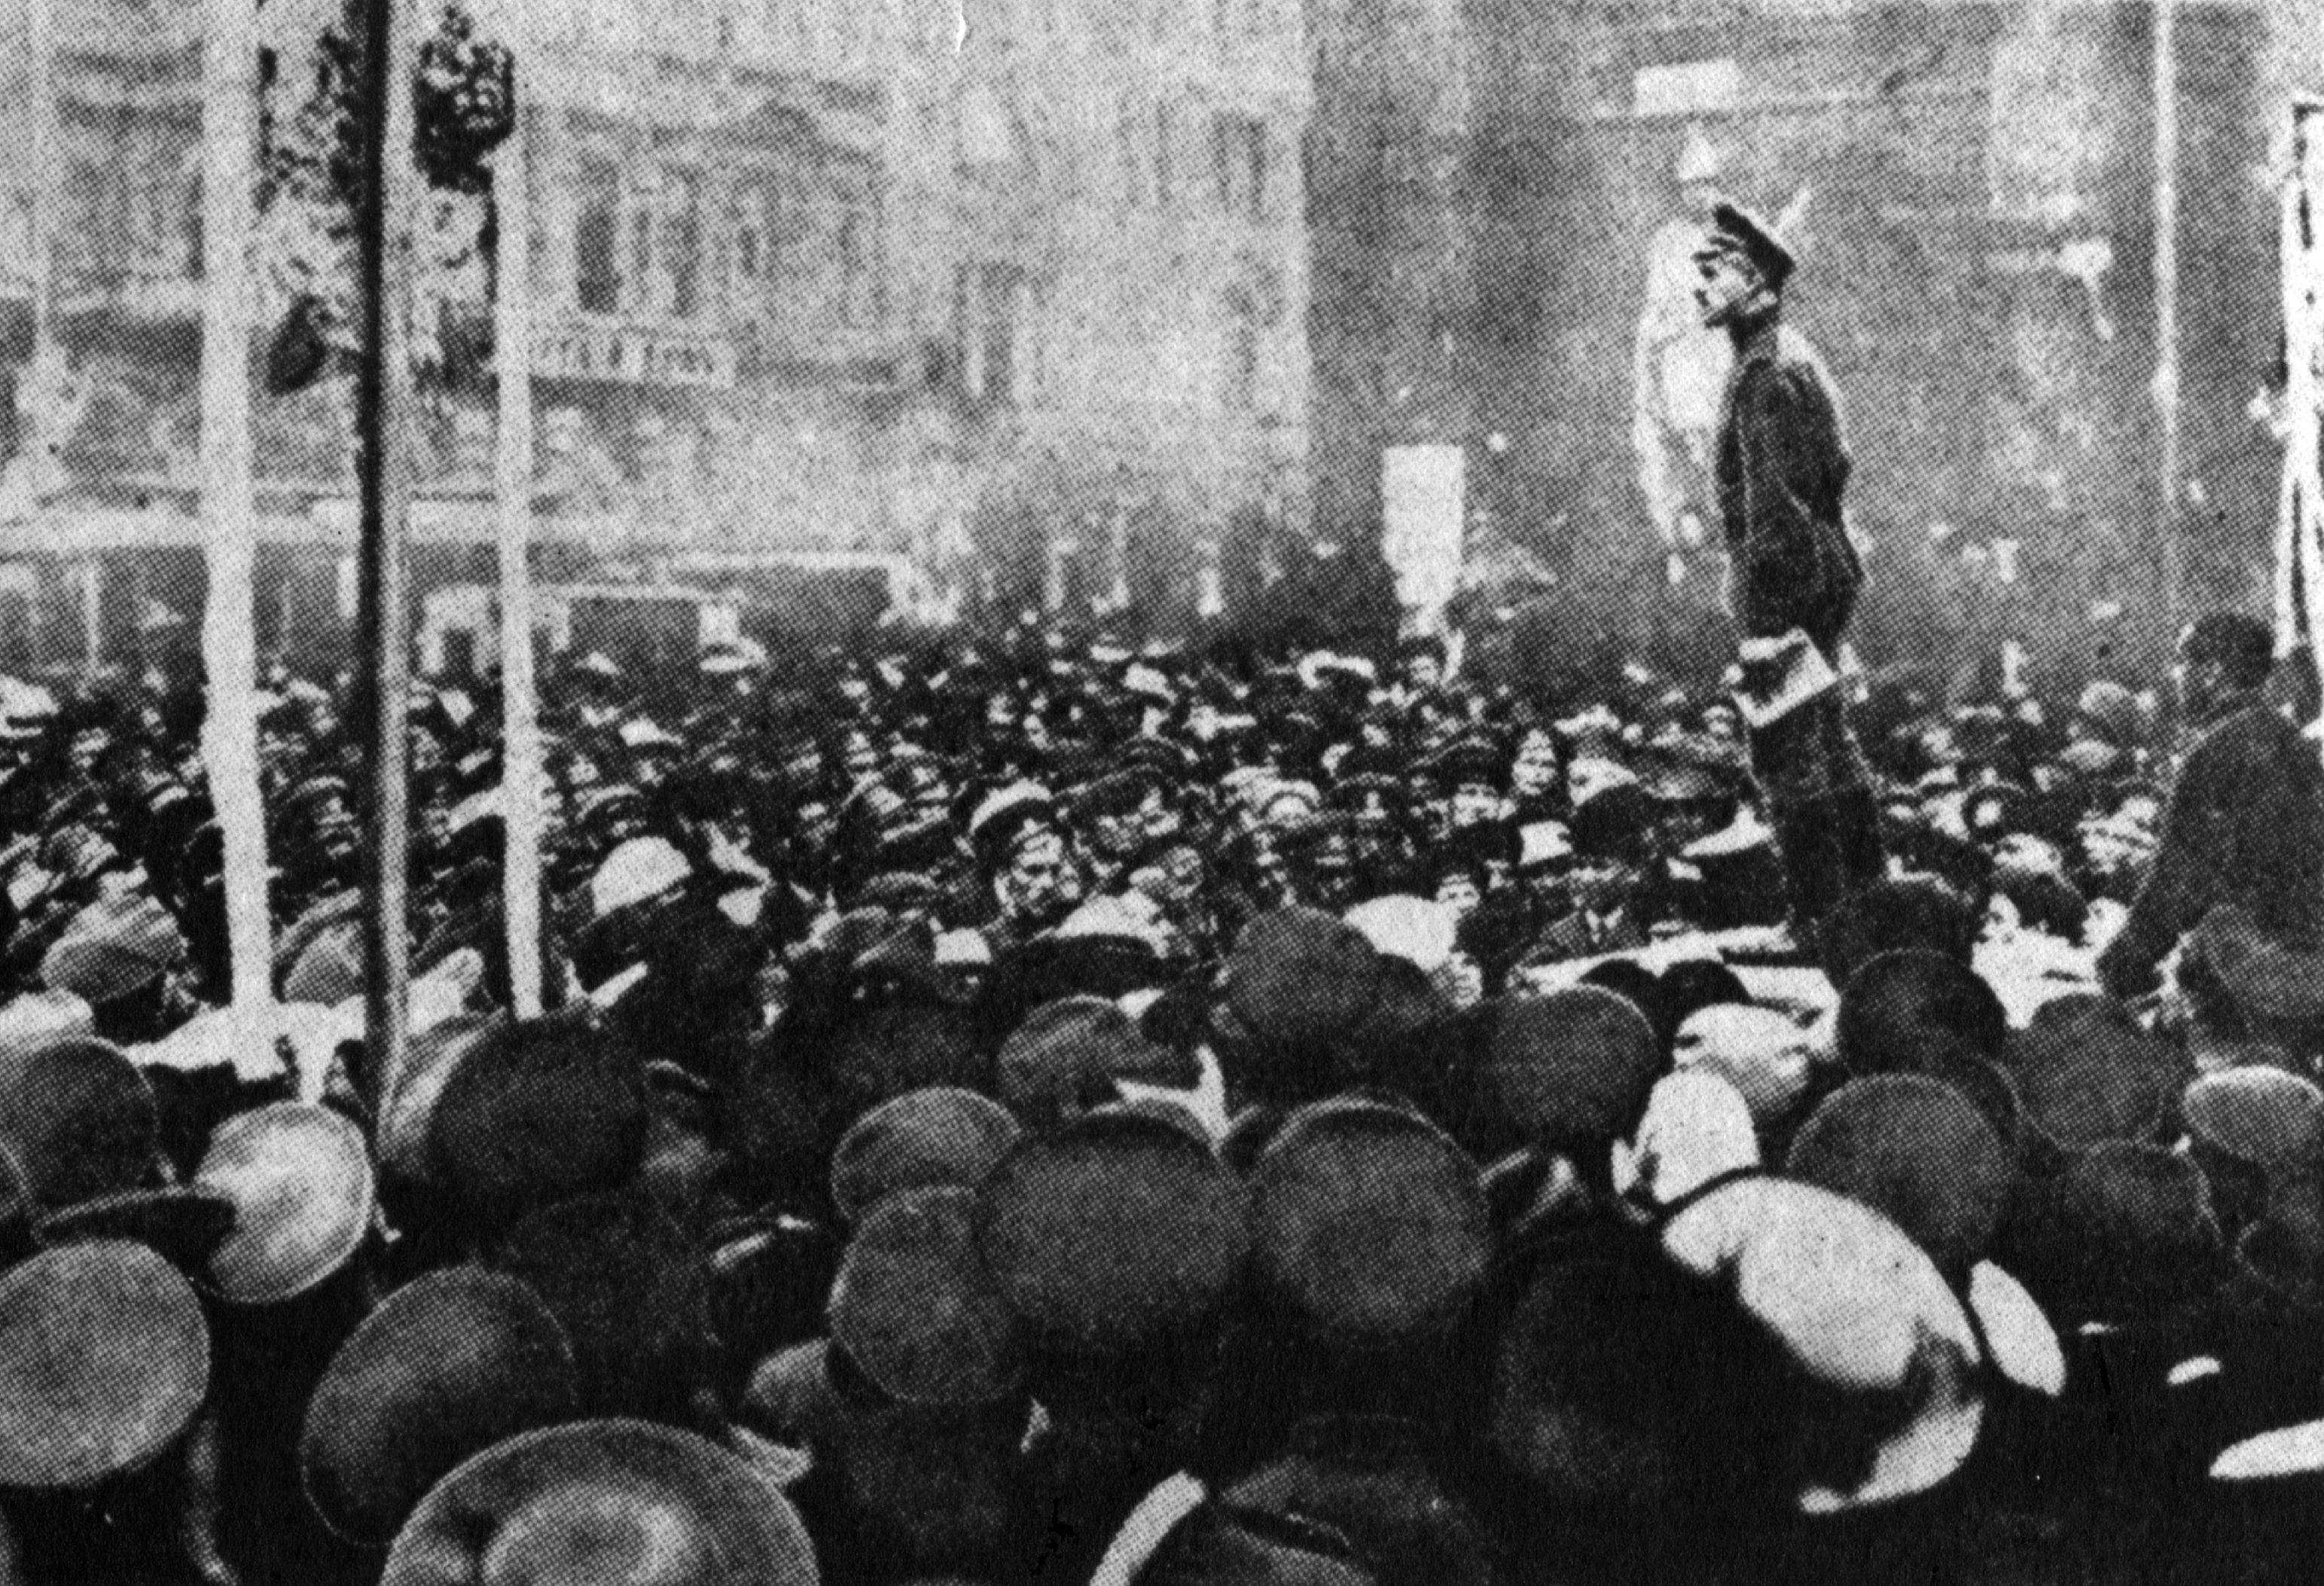 an overview of the riots in petrovgrad and the russian revolution in 1917